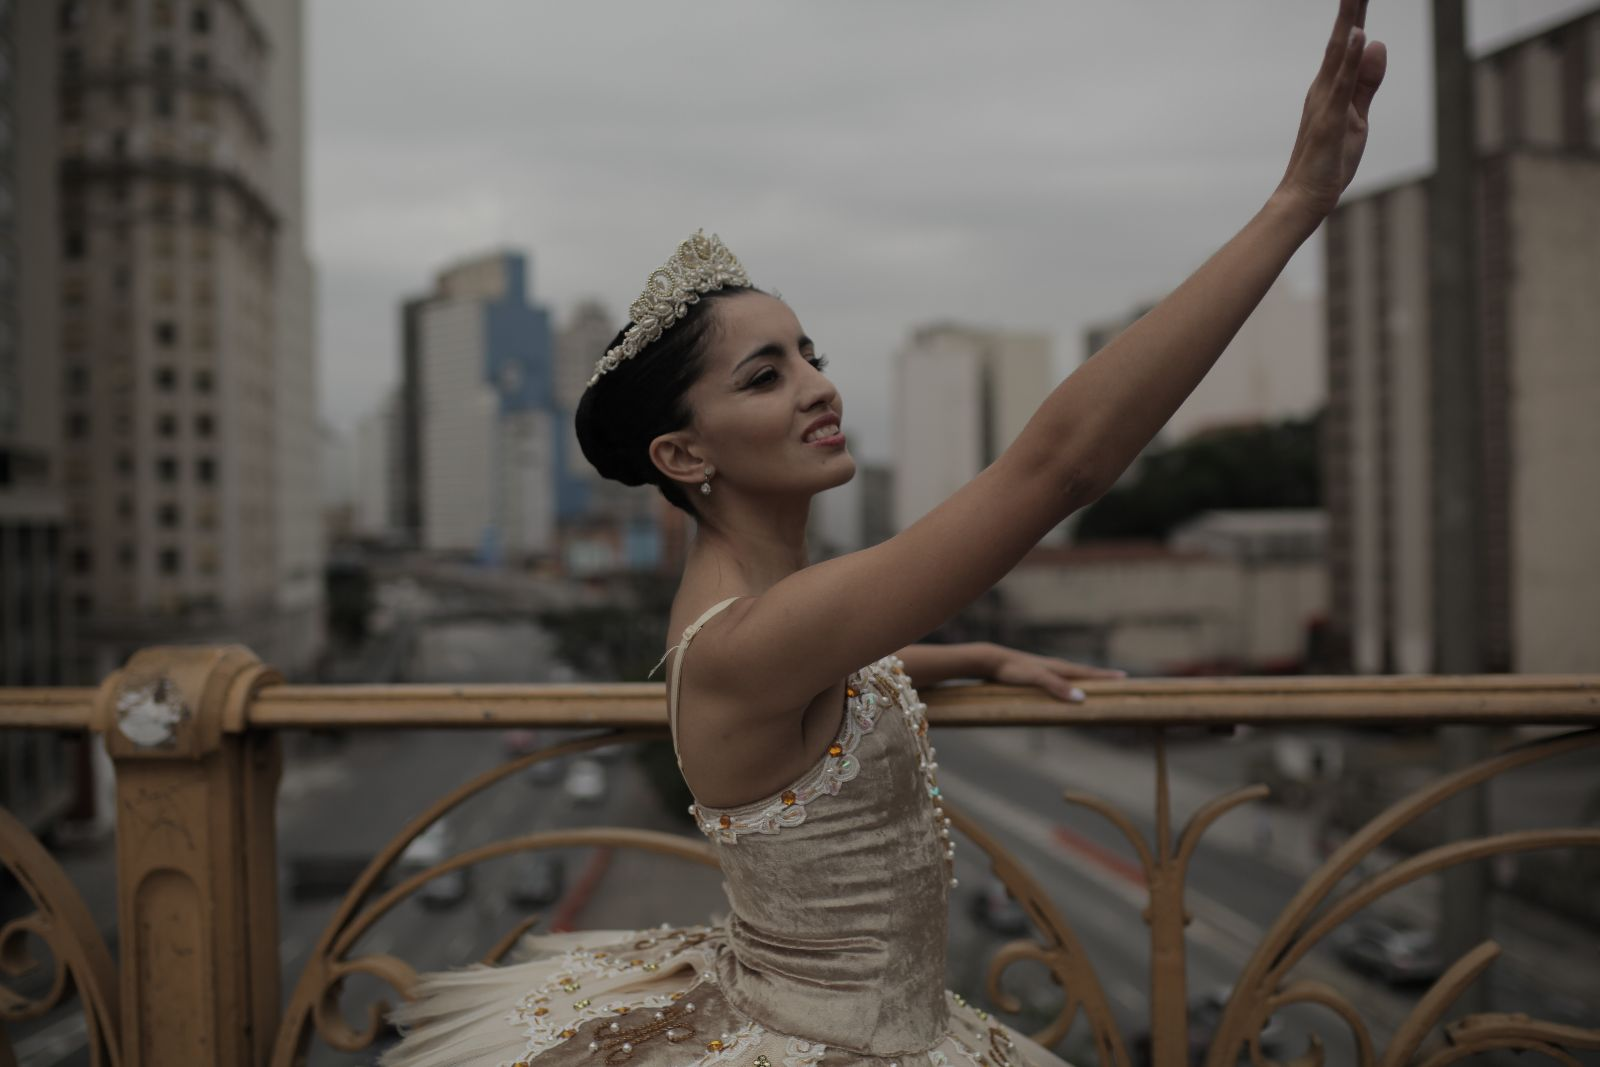 Director Alexandre Peralta on Learning Not to Underestimate in His Doc About Blind Ballerinas